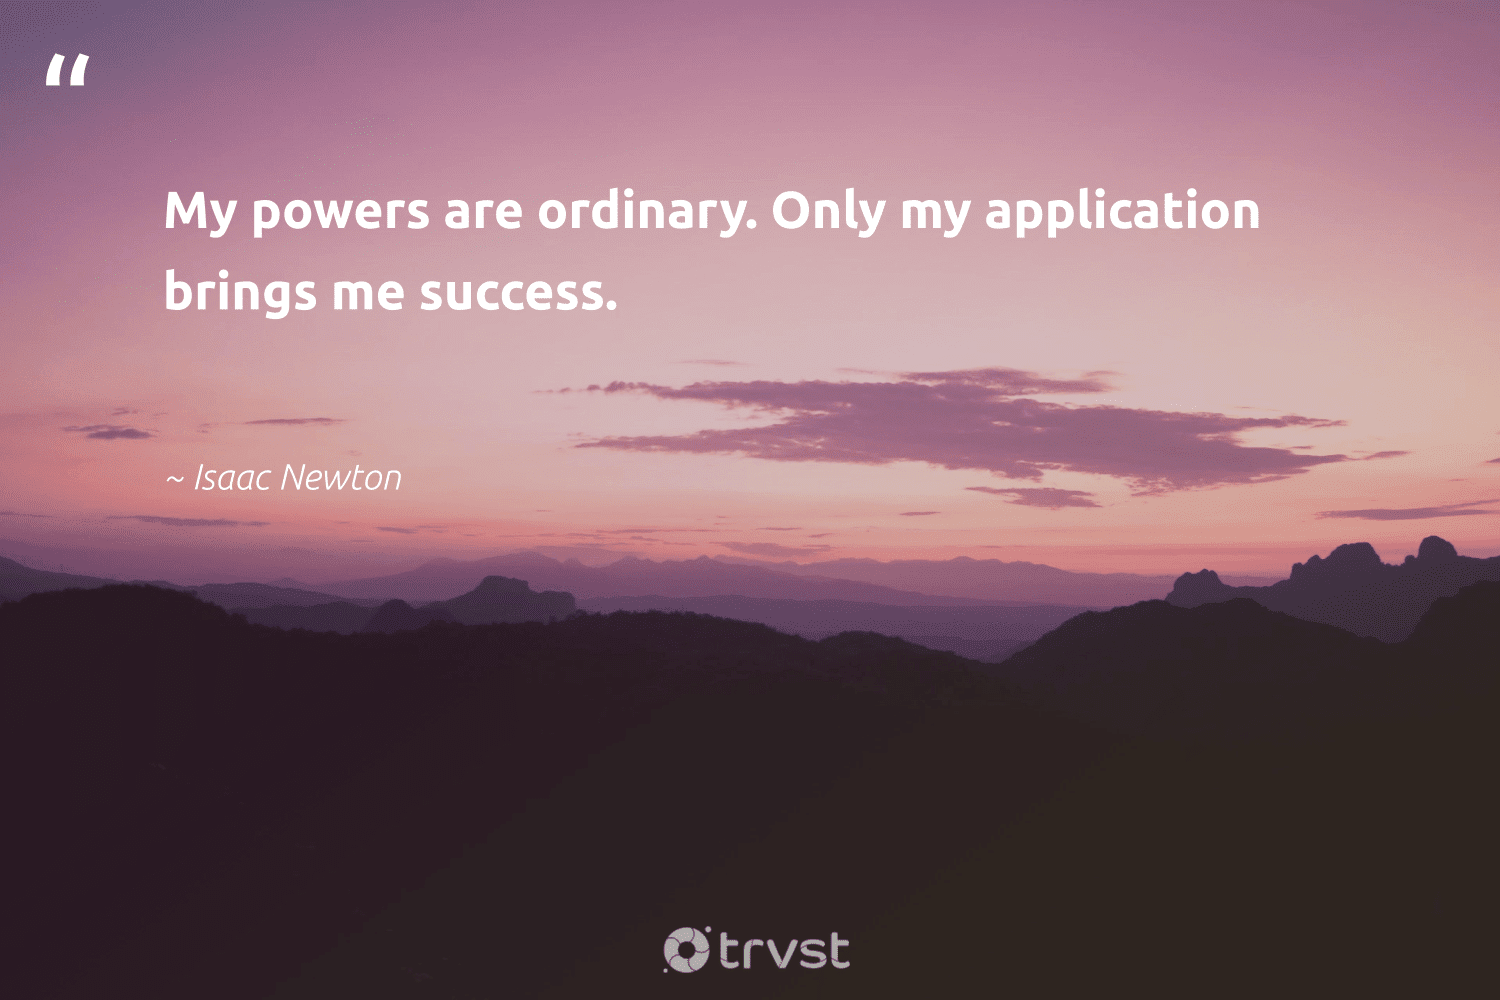 """""""My powers are ordinary. Only my application brings me success.""""  - Isaac Newton #trvst #quotes #success #mostwontiwill #acheivement #futureofwork #socialimpact #timemanagement #suceeed #nevergiveup #dotherightthing #focus"""